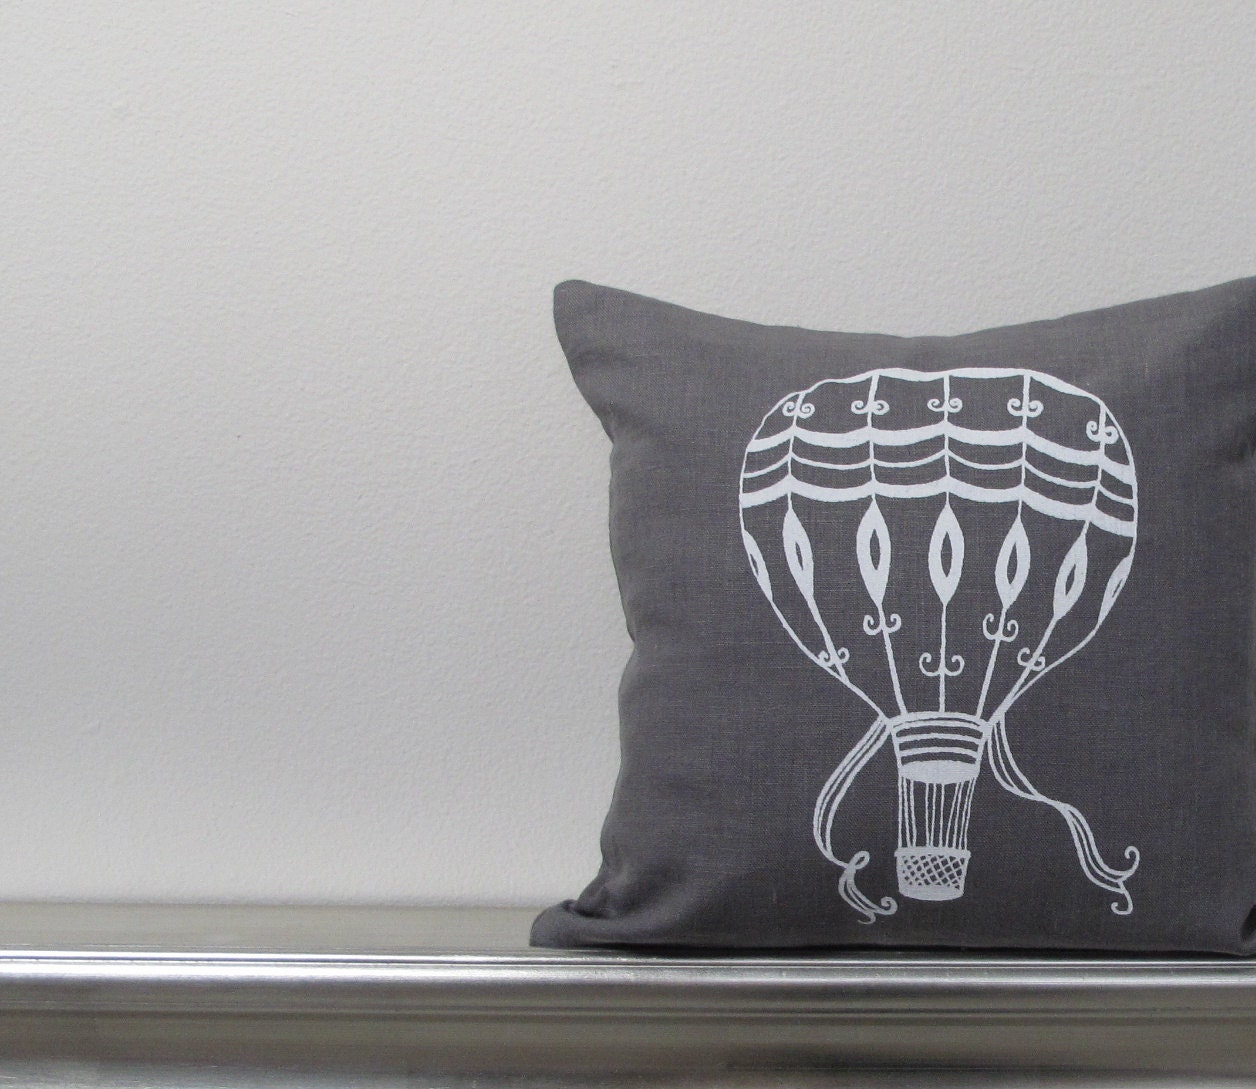 Pillow Cover - Vintage Hot Air Balloon in White on Gray Linen- 12 x 12 inches by Sweetnature Designs - SweetnatureDesigns